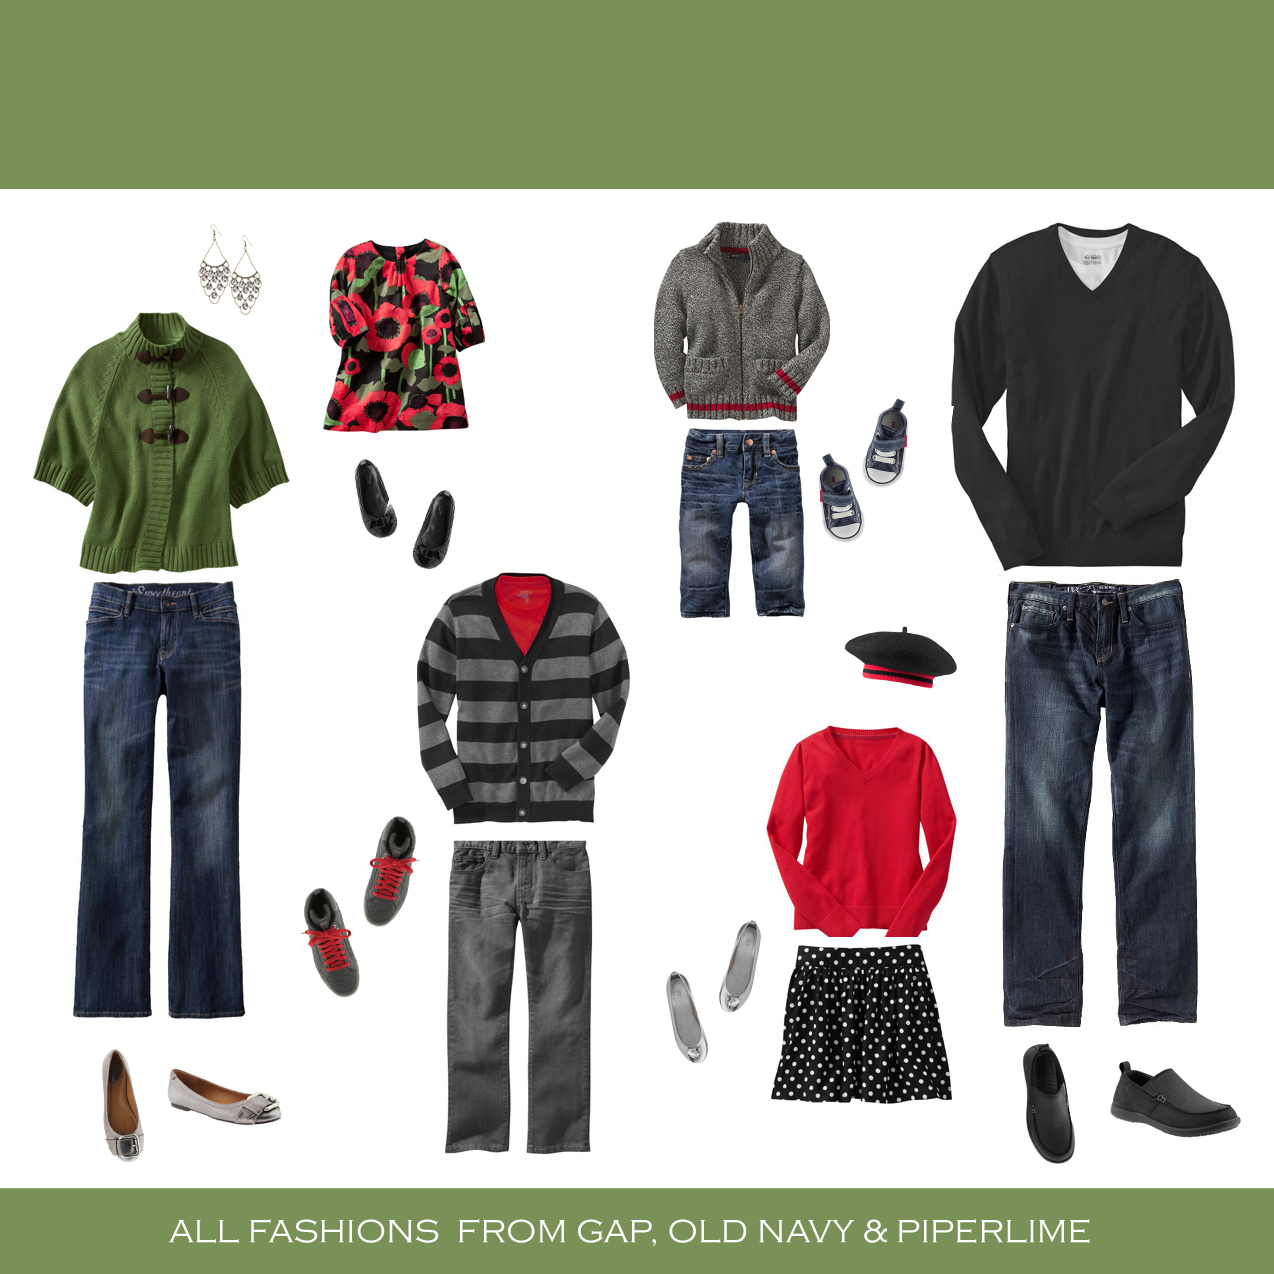 Family Picture Clothing Ideas For Winter Here Are Some IdeasFamily Photo